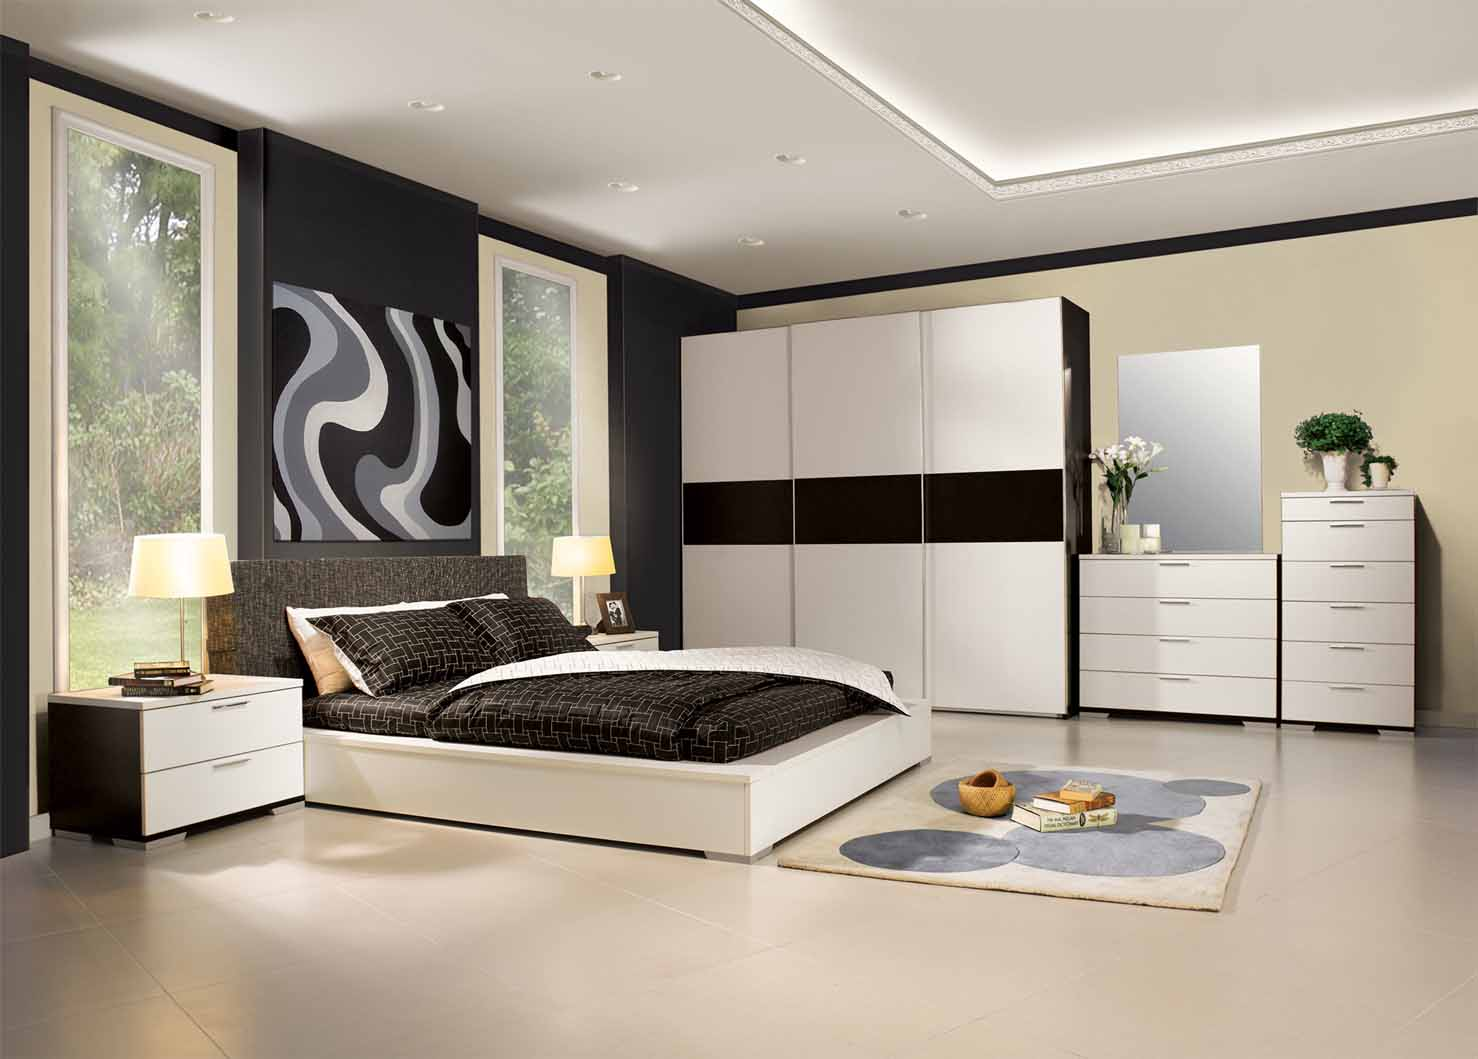 home interior designs modern bedroom ideas. Black Bedroom Furniture Sets. Home Design Ideas